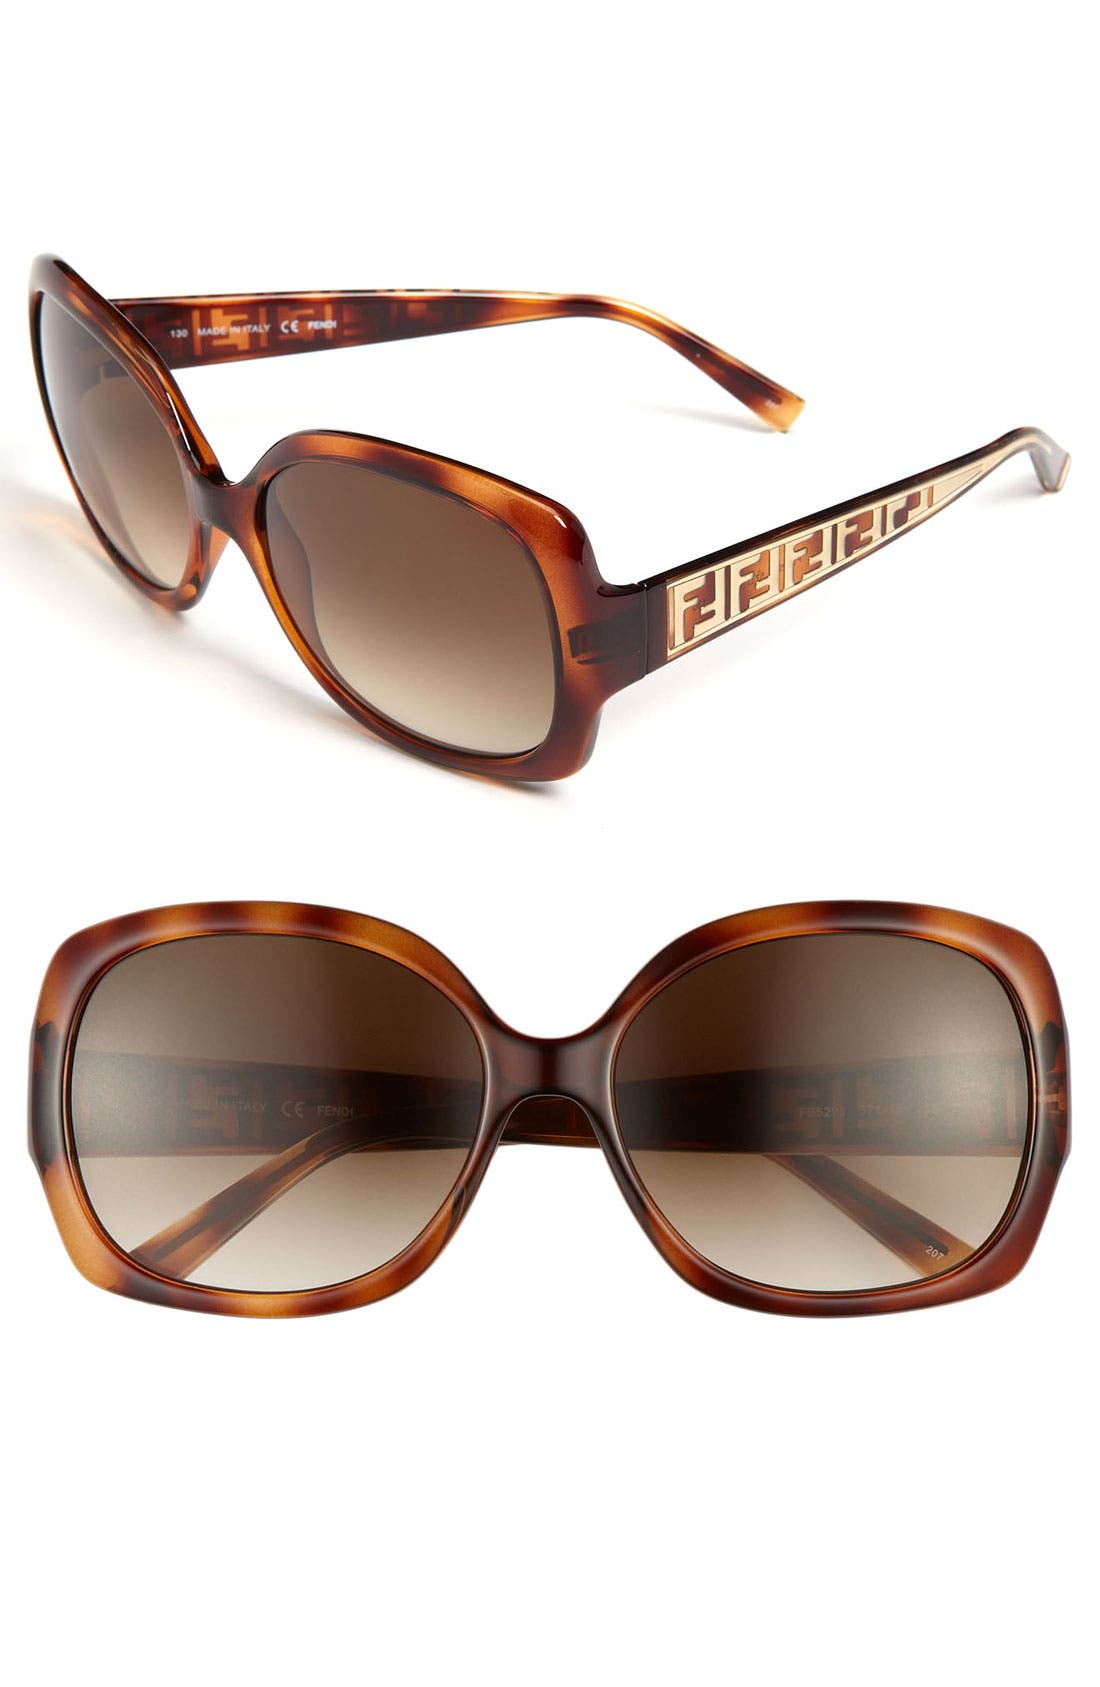 Alternate Image 1 Selected - Fendi 'Zucca' 57mm Sunglasses